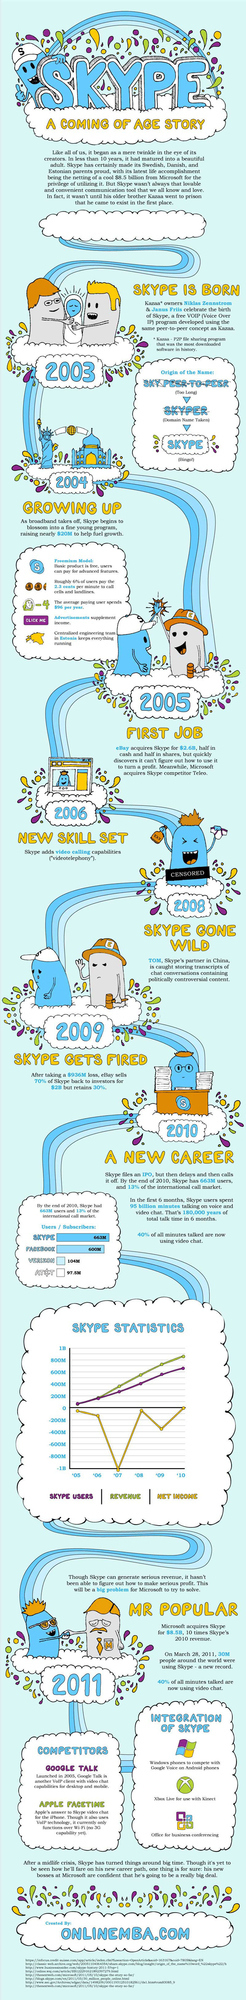 The Cutest Skype Timeline Ever (infographic)